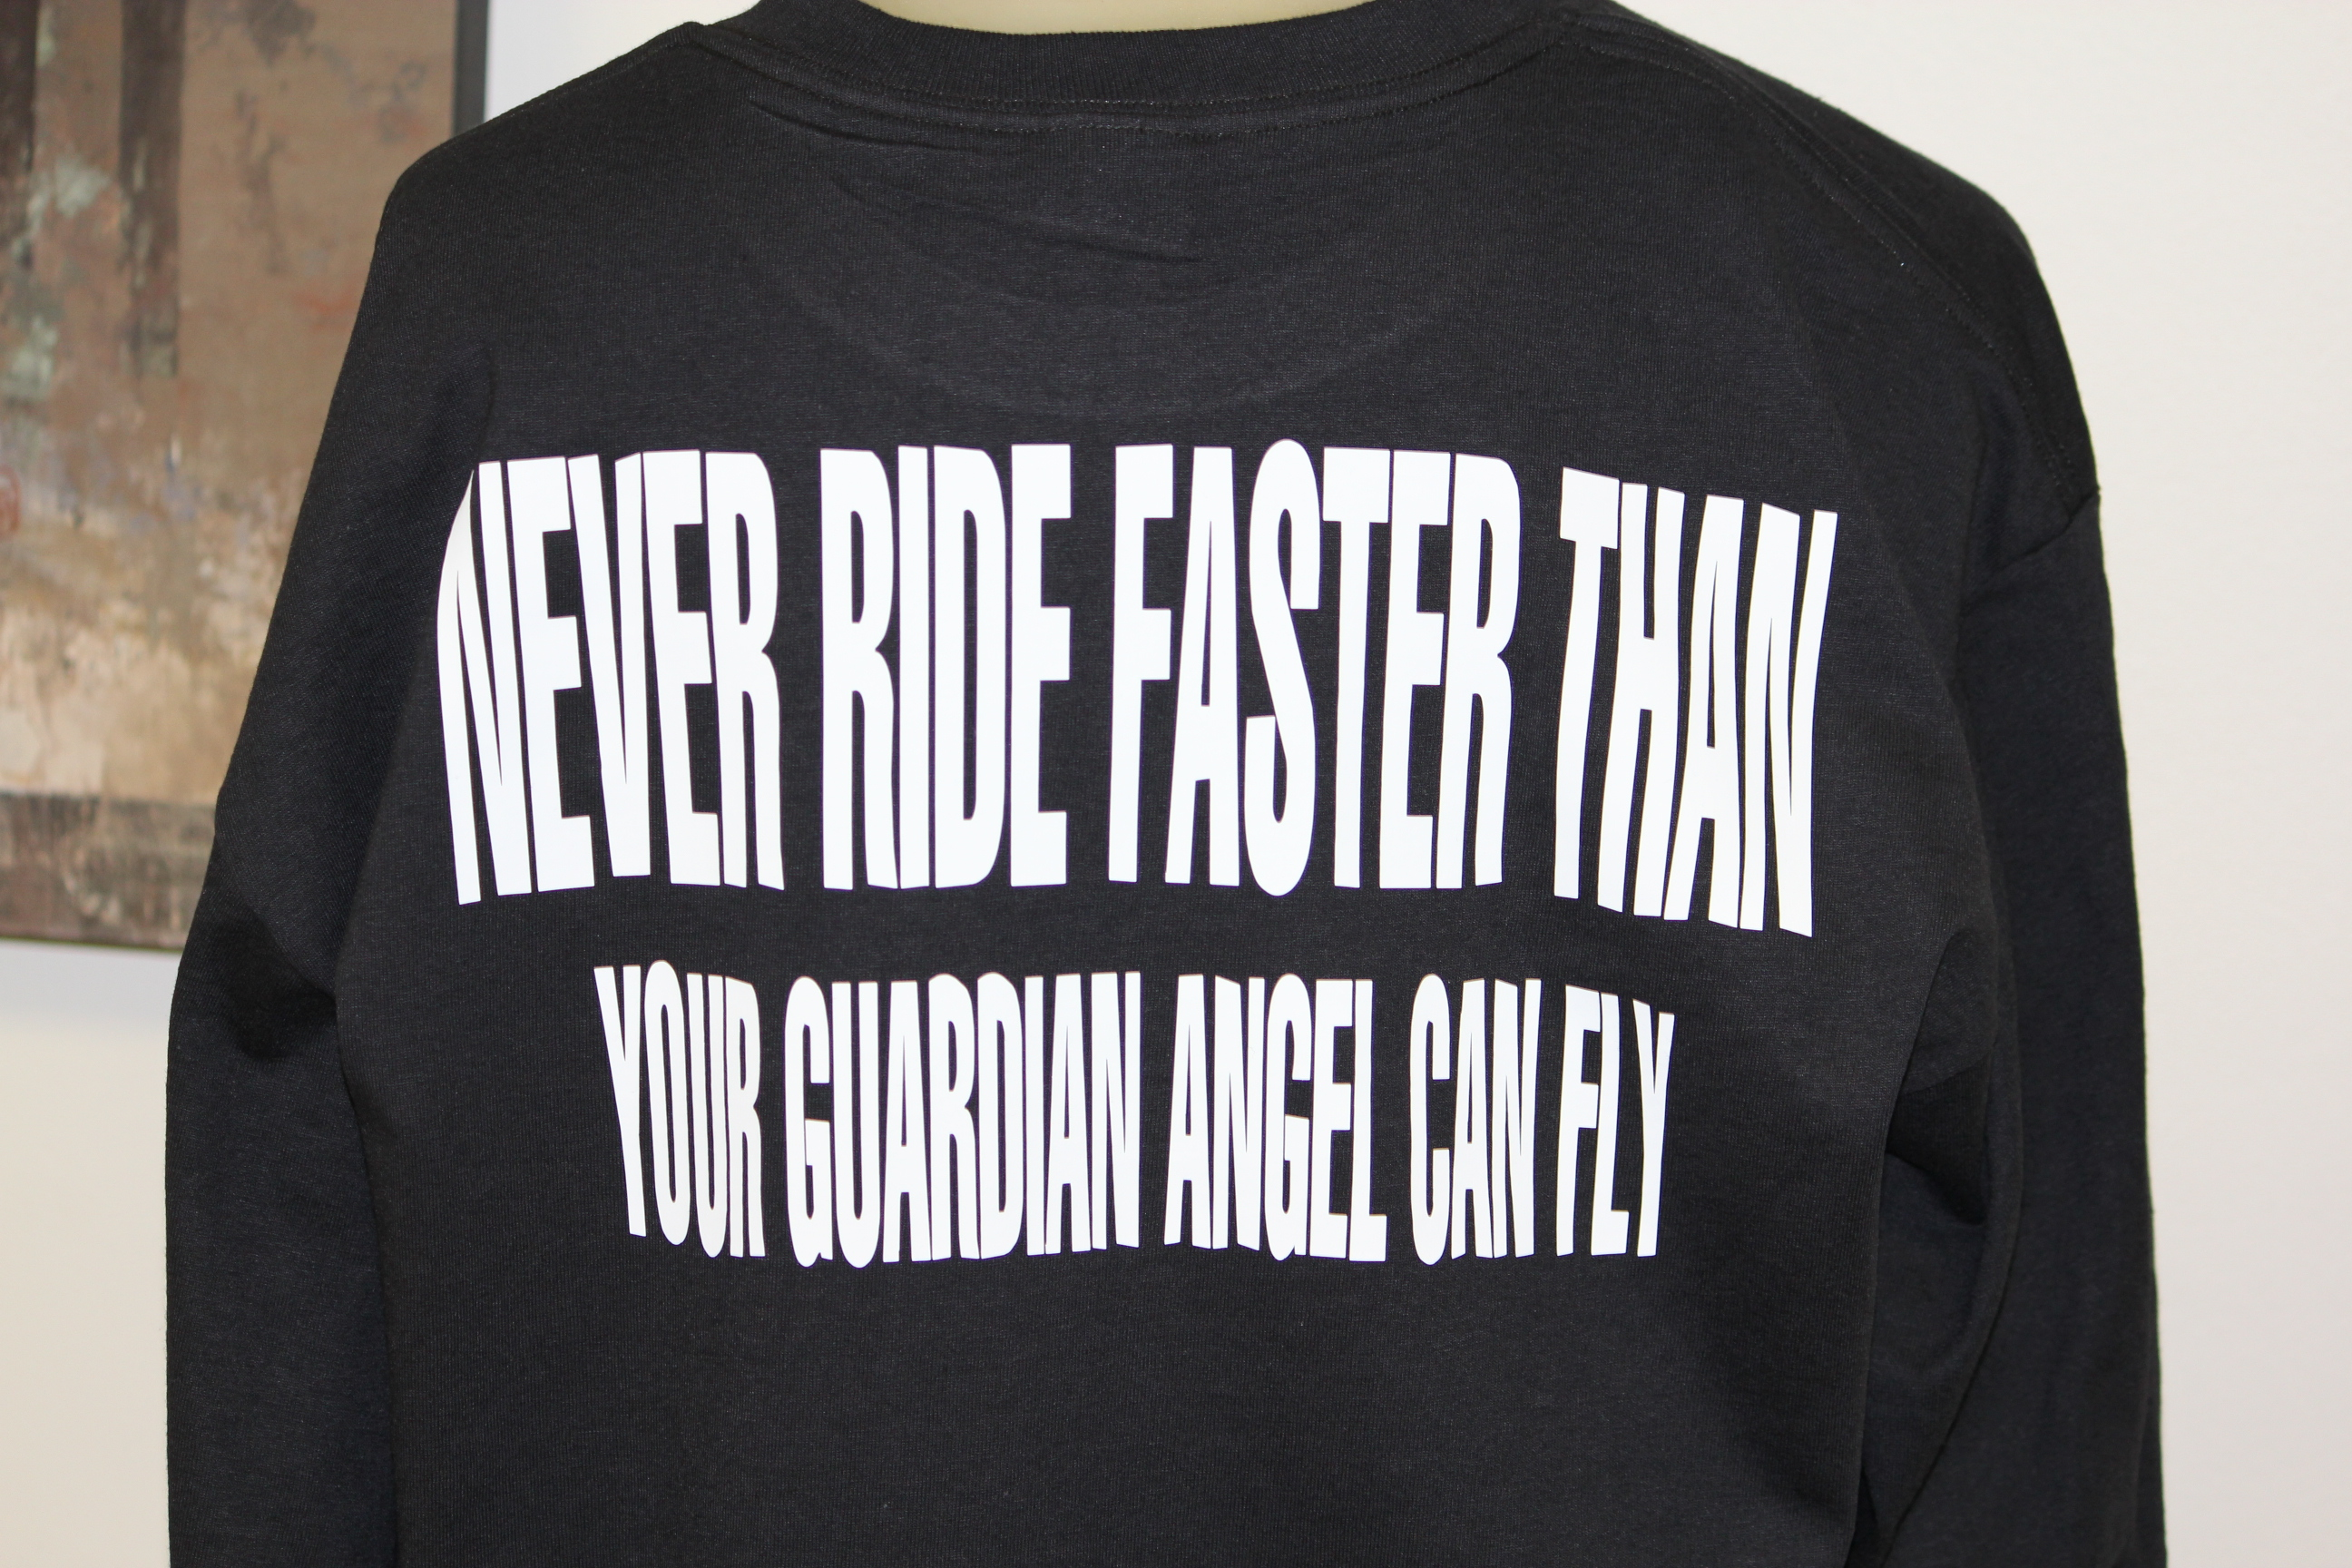 never-ride-faster-than-your-guardian-angel-can-fly-biker-t-shirts.jpg